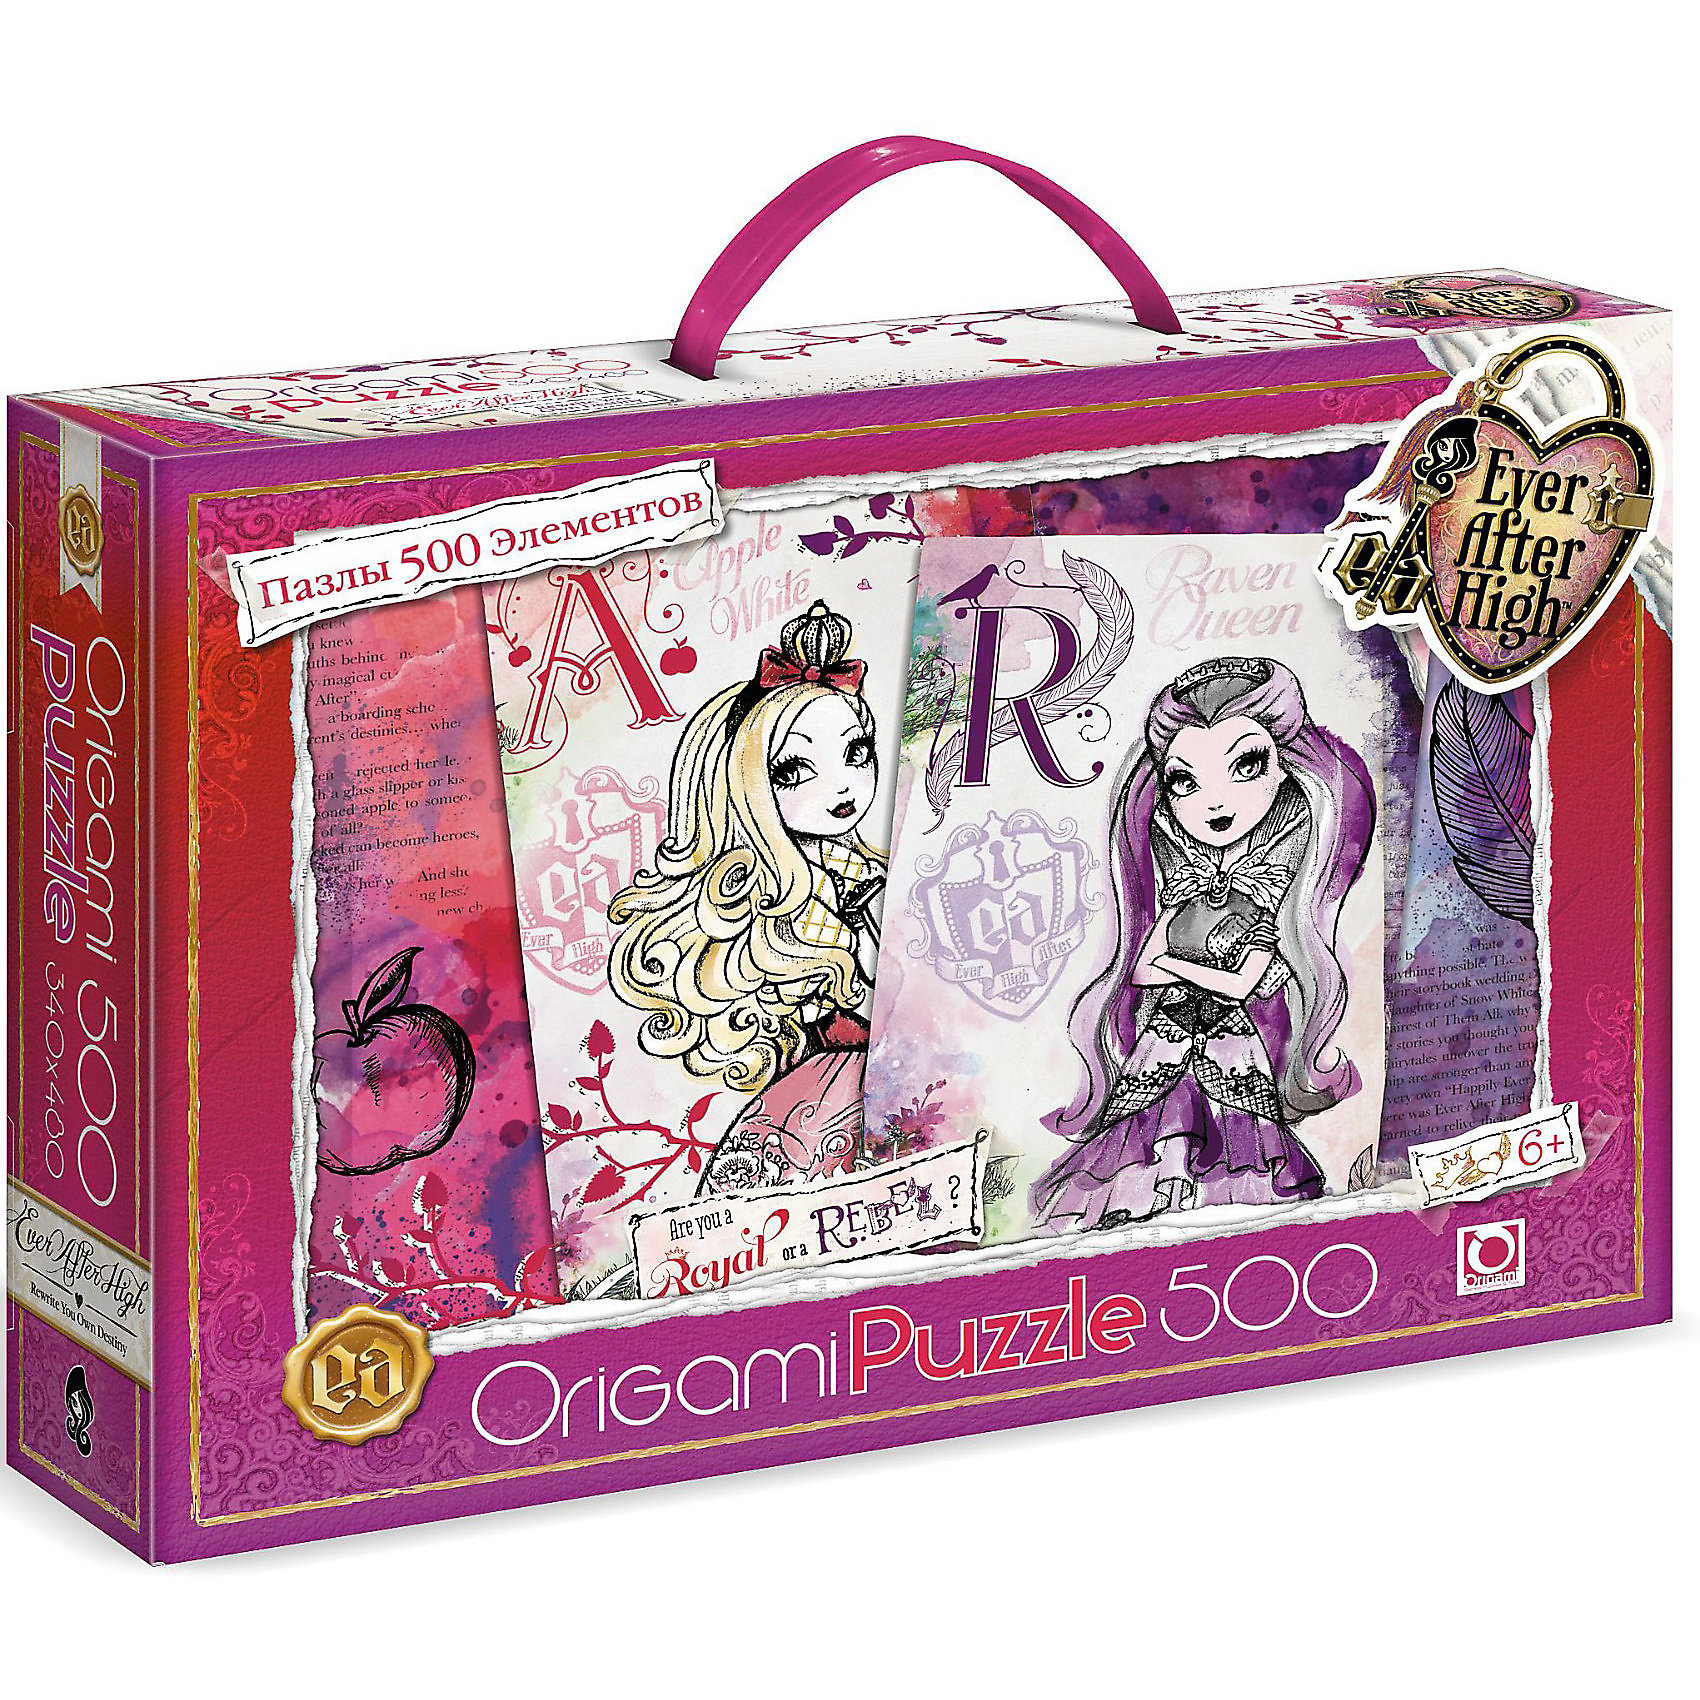 Origami Пазл Ever After High, 500 деталей, Оригами origami пазл ever after high 500 деталей оригами